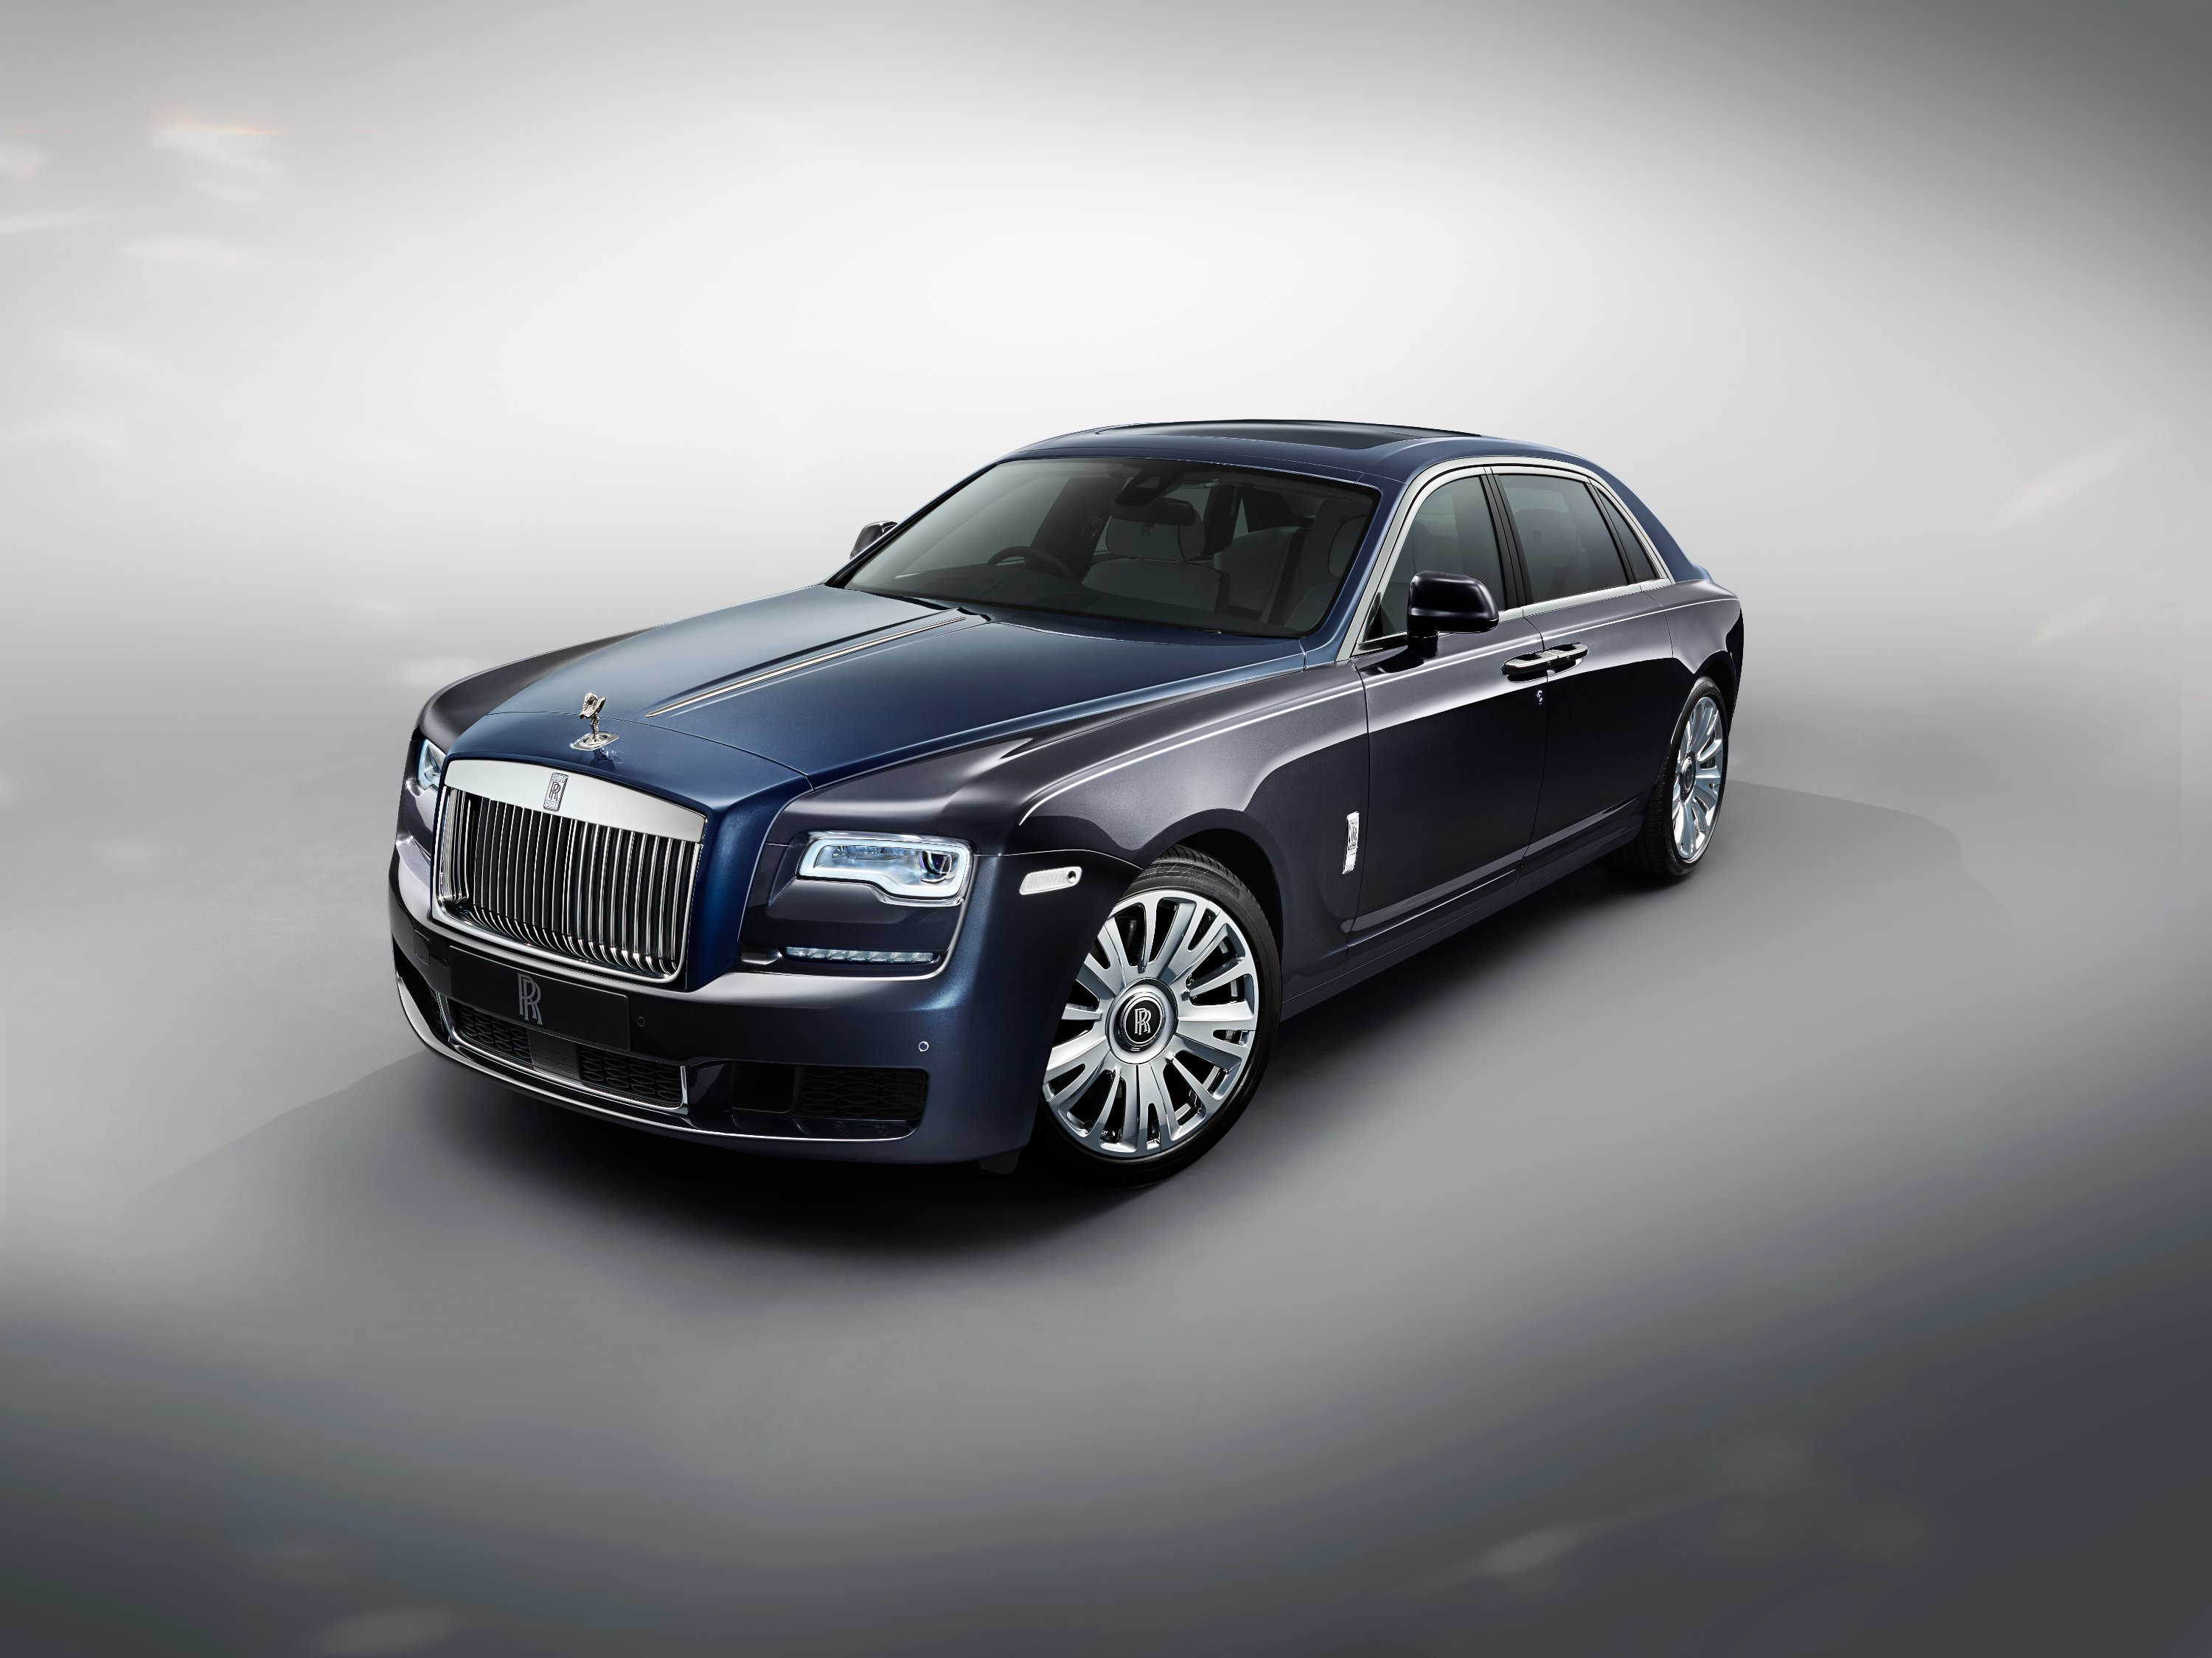 Rolls-royce Ghost Extended Wheelbase Awarded Best Super-luxury Car By What Car? Magazine